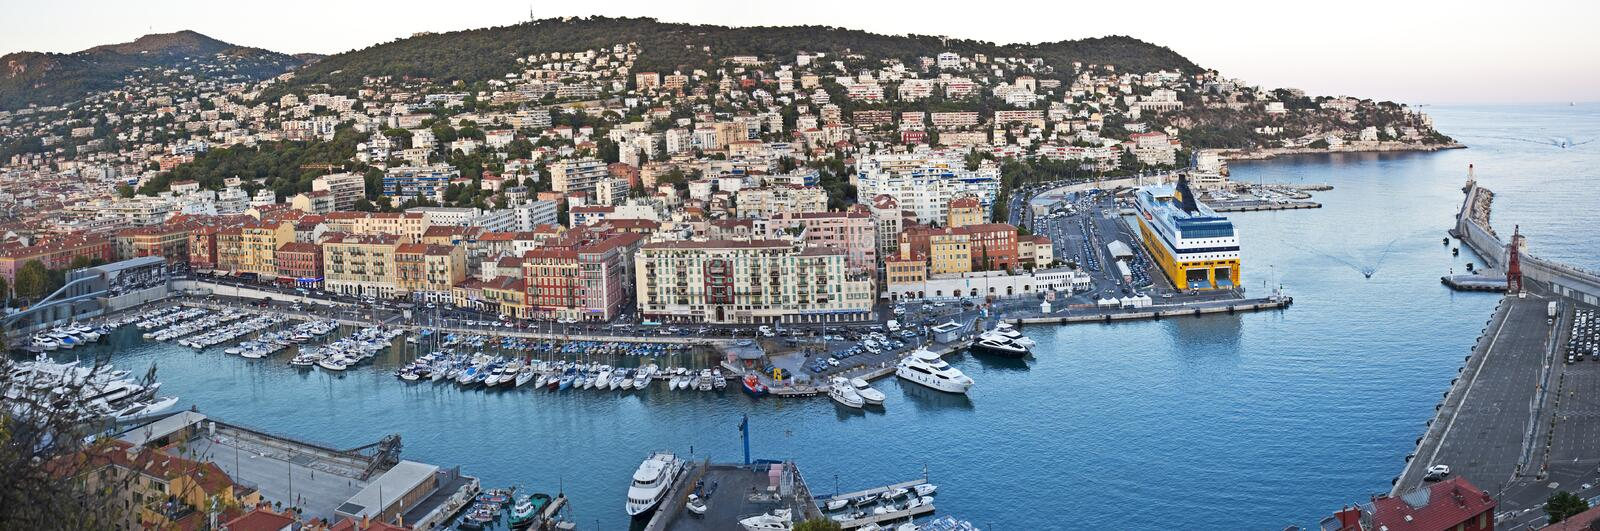 Panorama of Port Lympia, Nice, France royalty free stock images